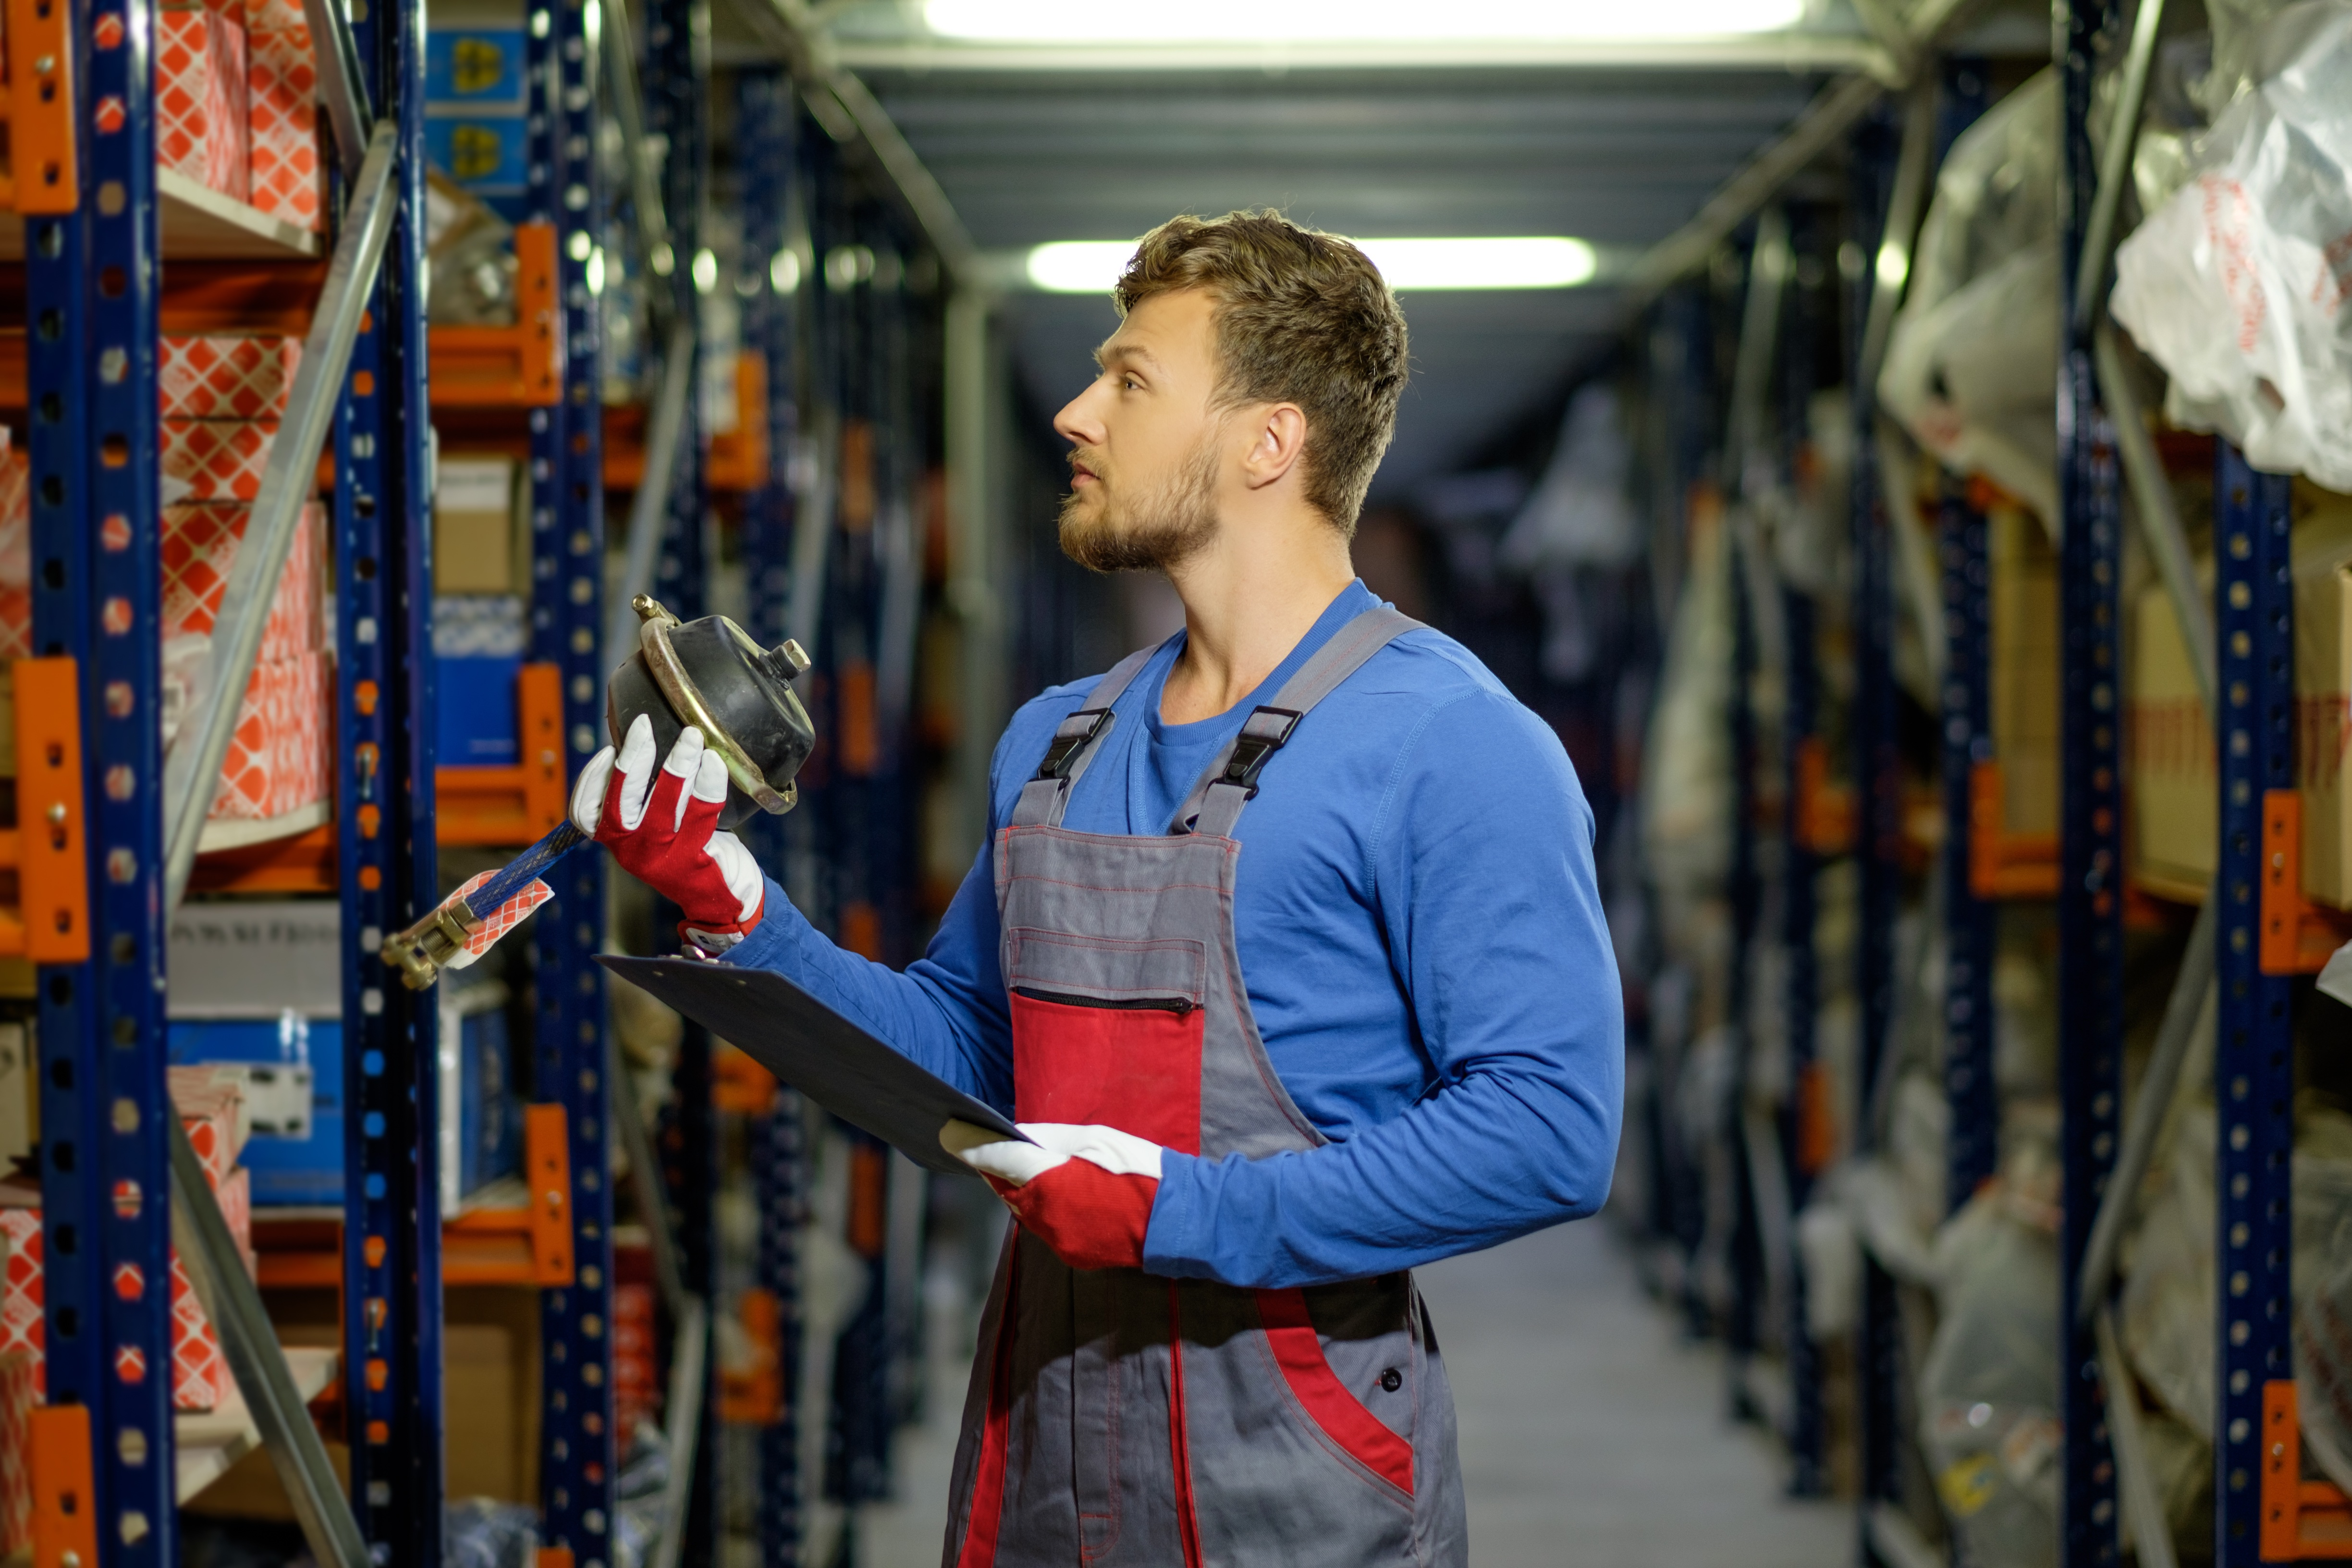 7 Supplier Evaluation Questions to Ask Before Choosing a Parts Vendor